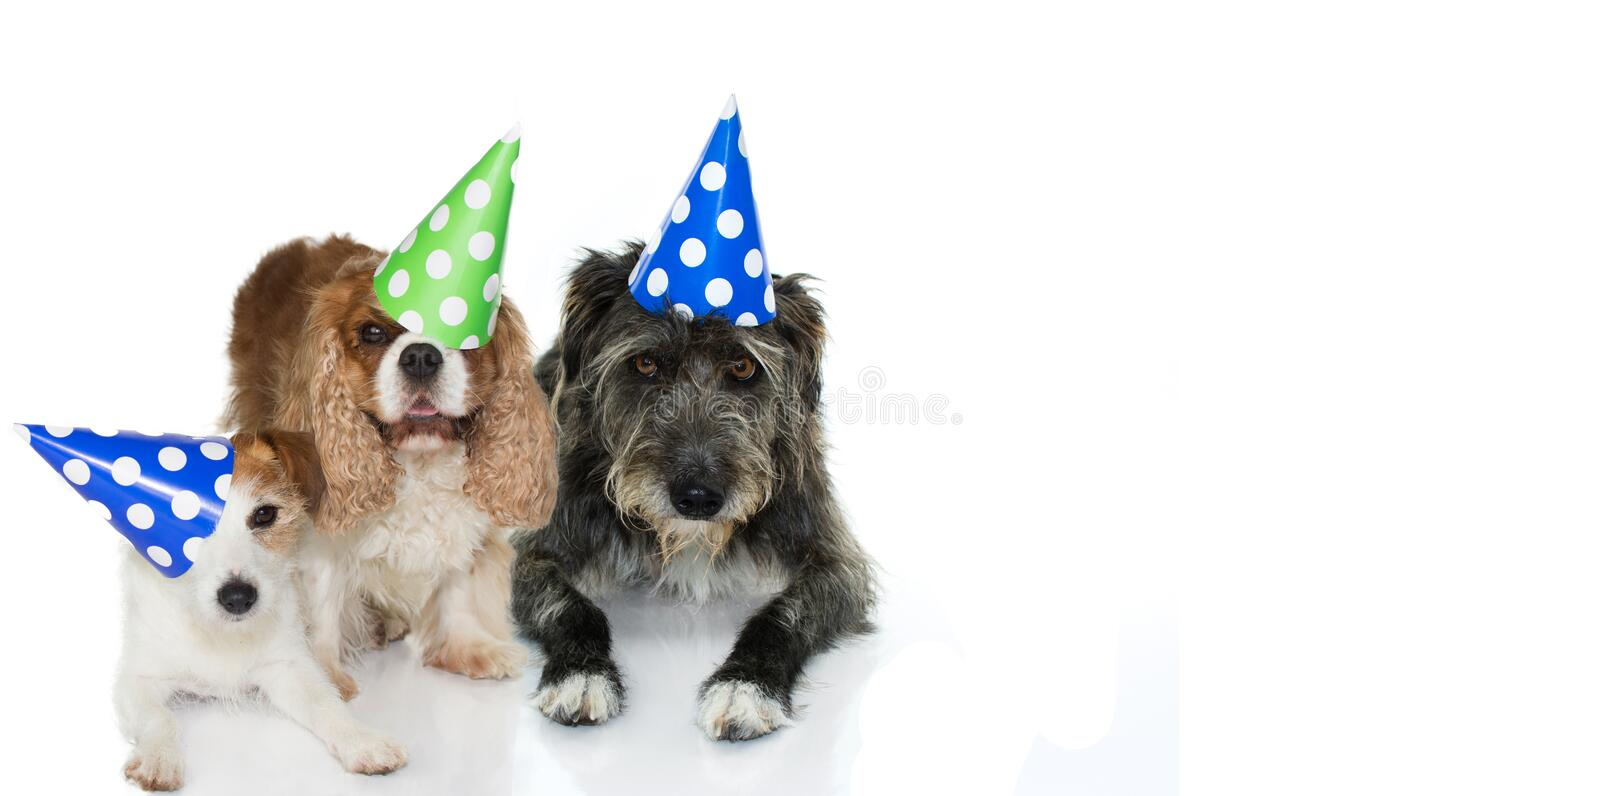 TREE DOGS CELEBRATING A BIRTHDAY PARTY WEARING A BLUE, GREEN AND royalty free stock photos